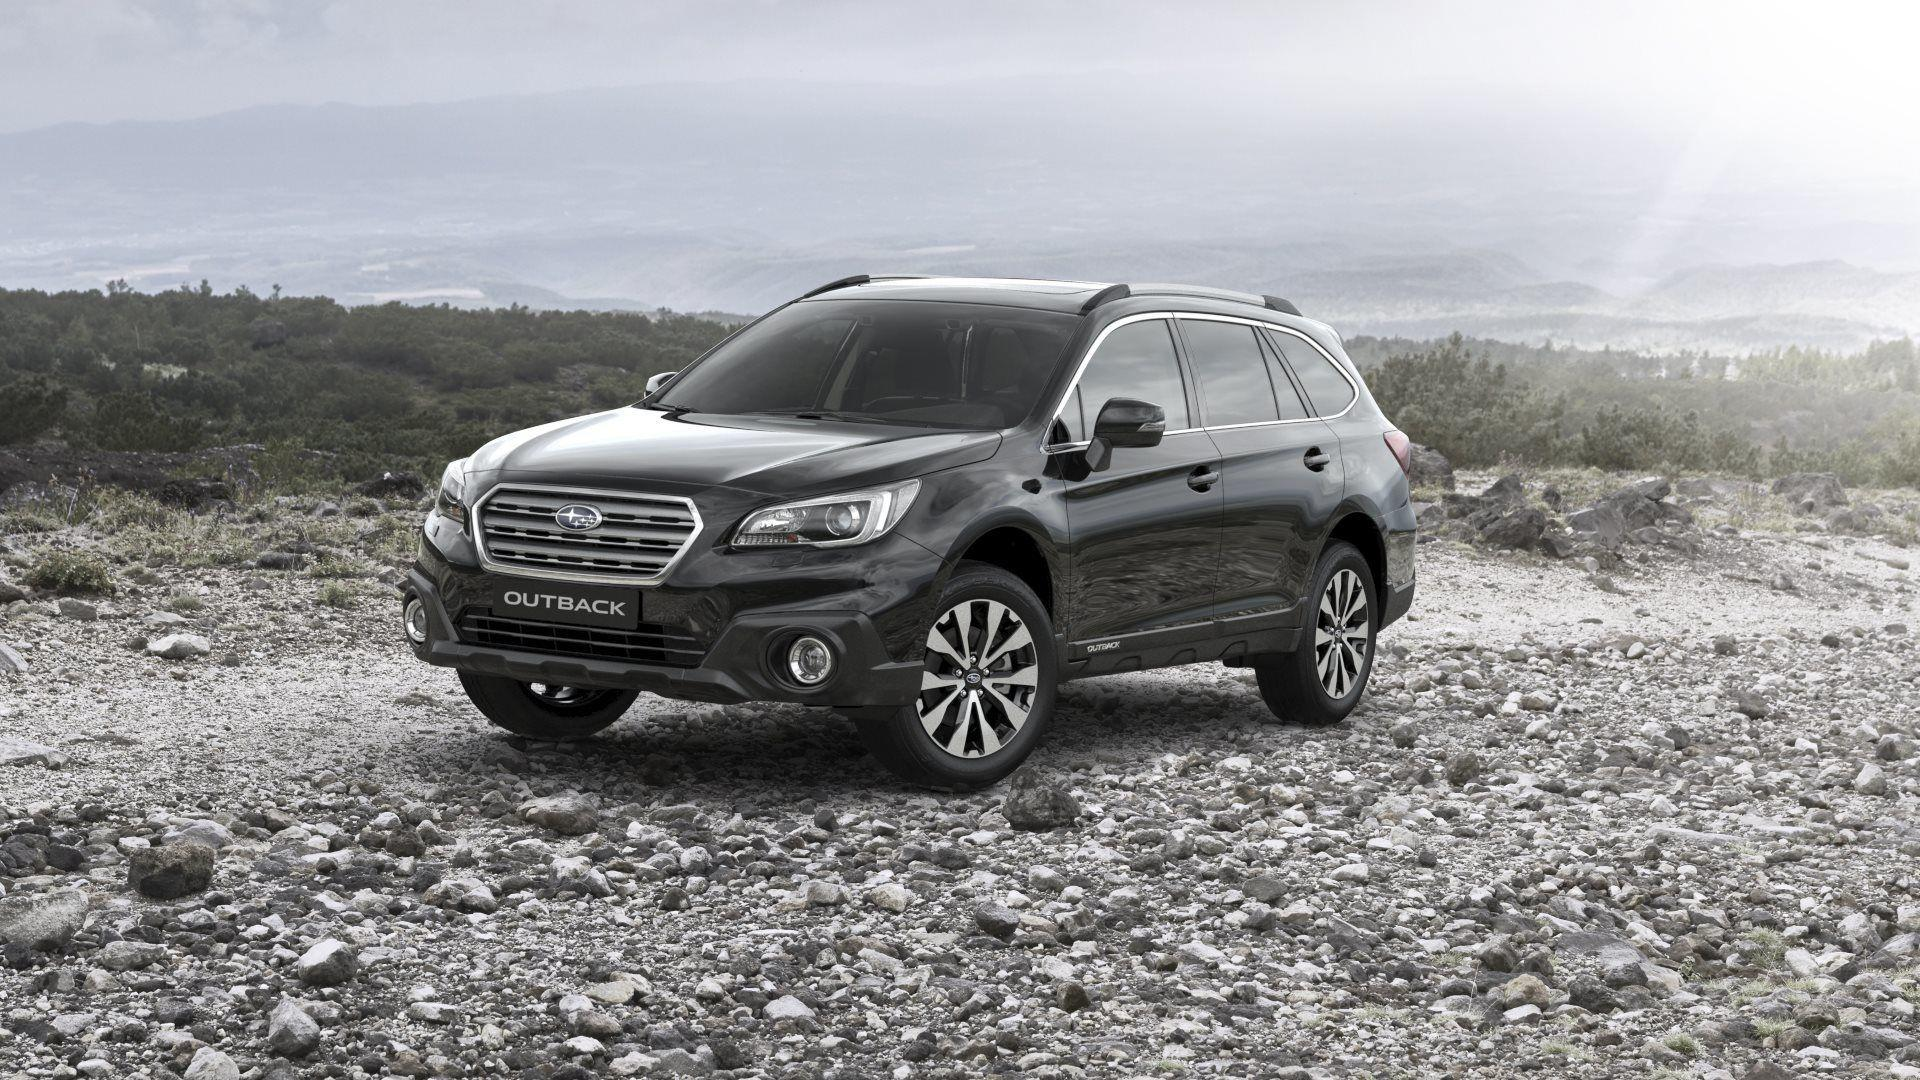 LIMITED RUN SUBARU OUTBACK INTRODUCED